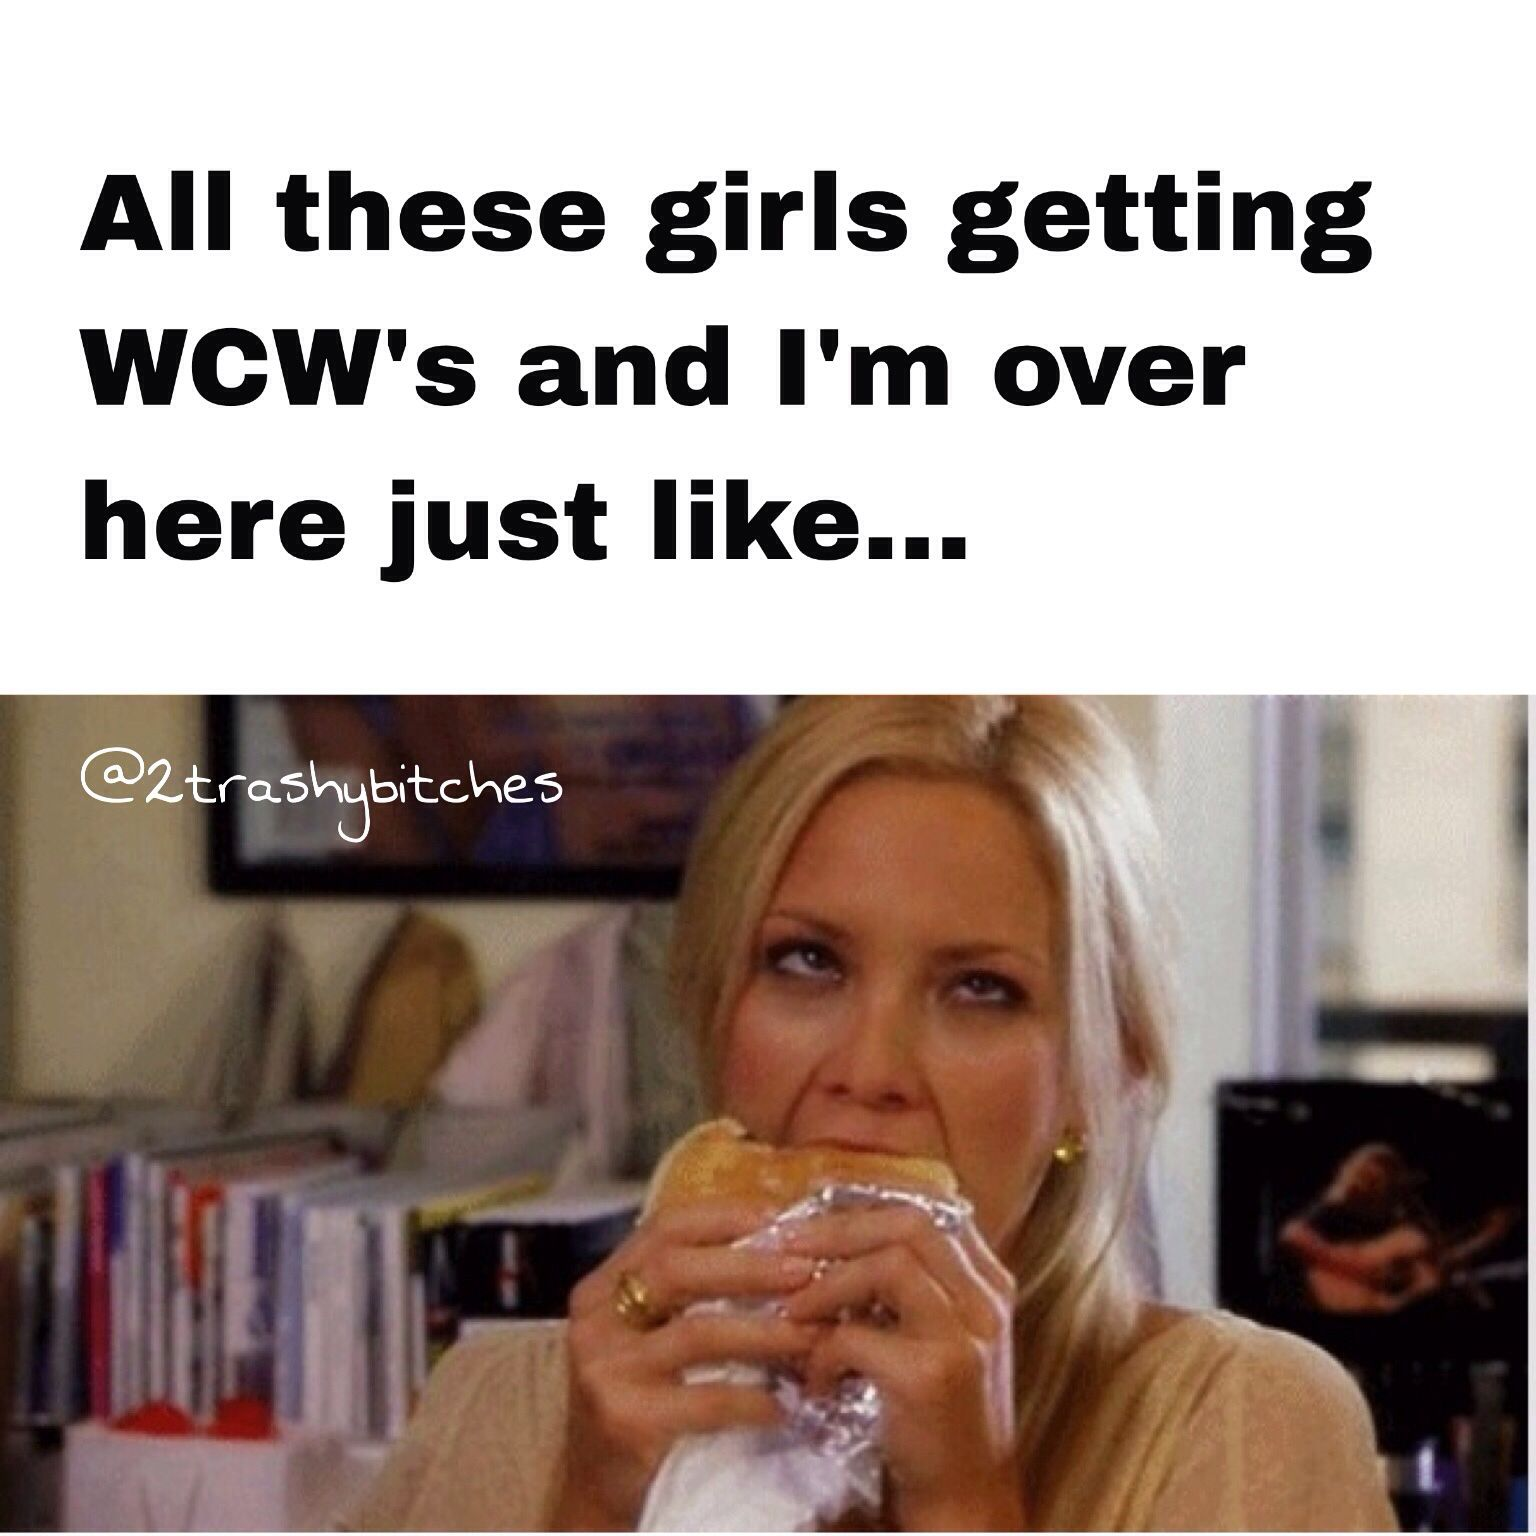 Wcw Woman Crush Wednesday Funny 2 Trashy Bitches Makes Me